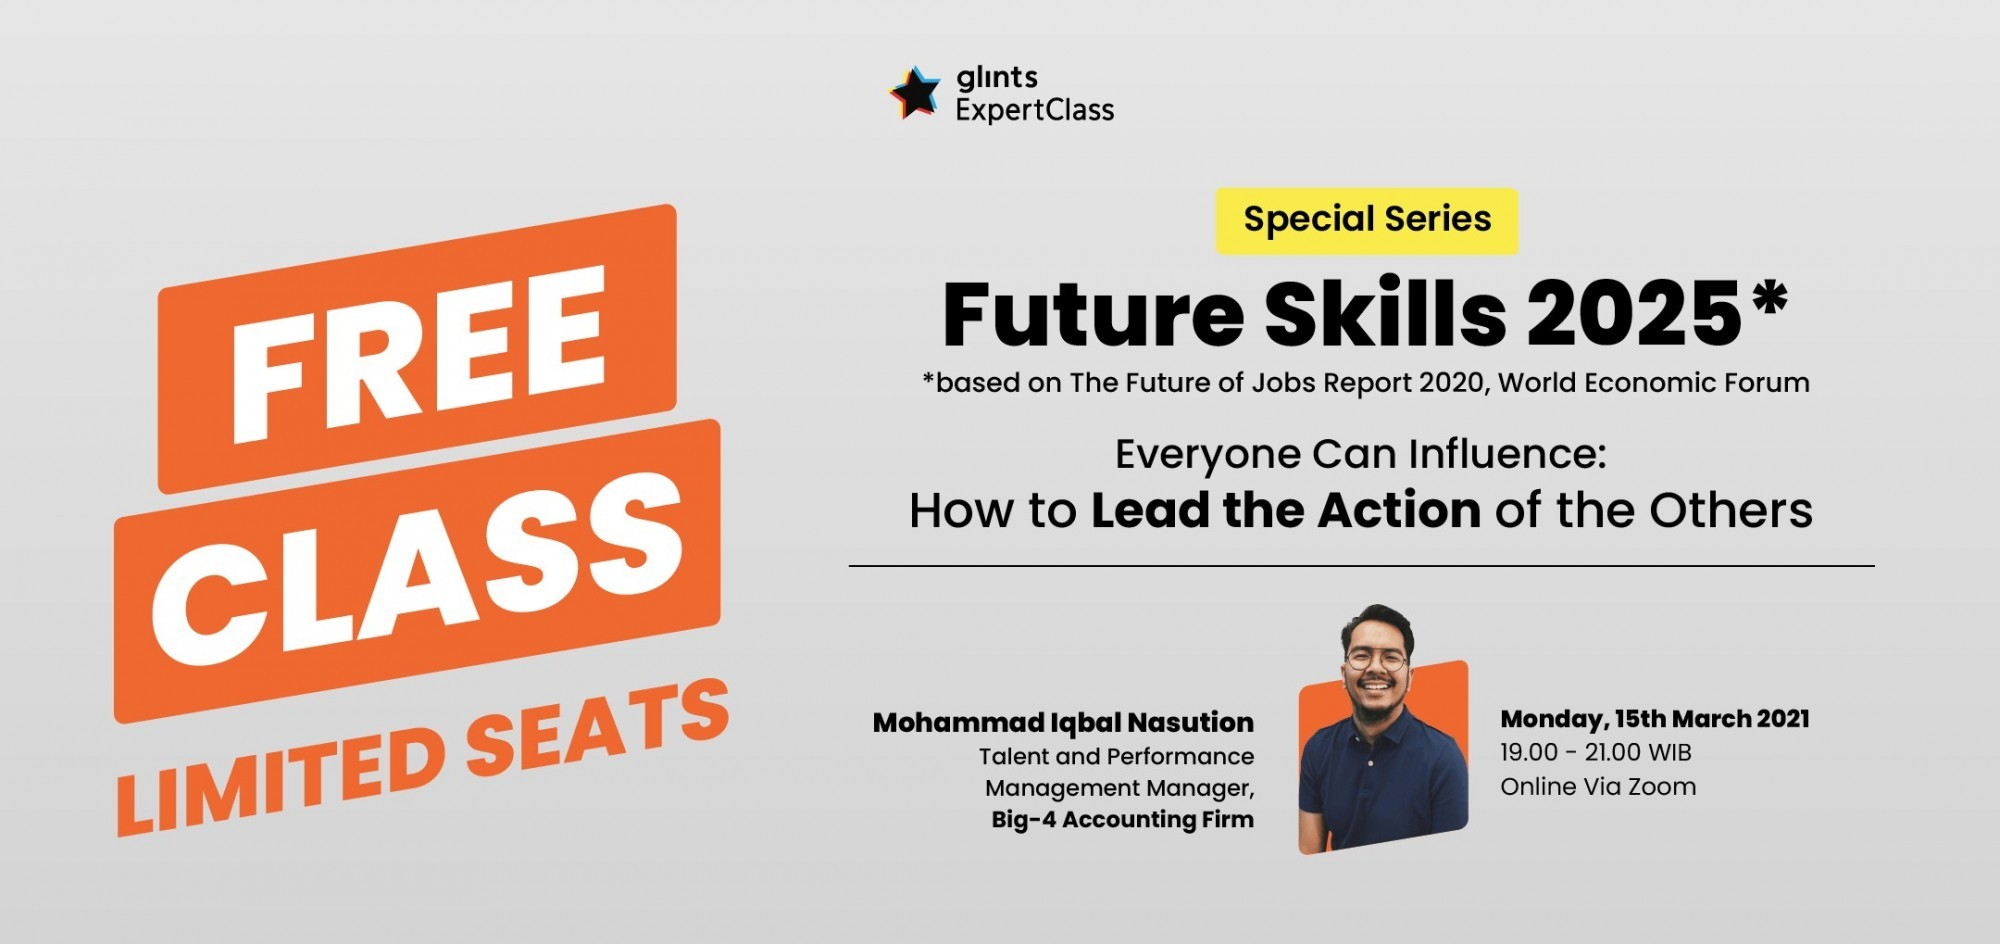 [Online Glints ExpertClass] Everyone Can Influence: How to Lead the Action of the Others